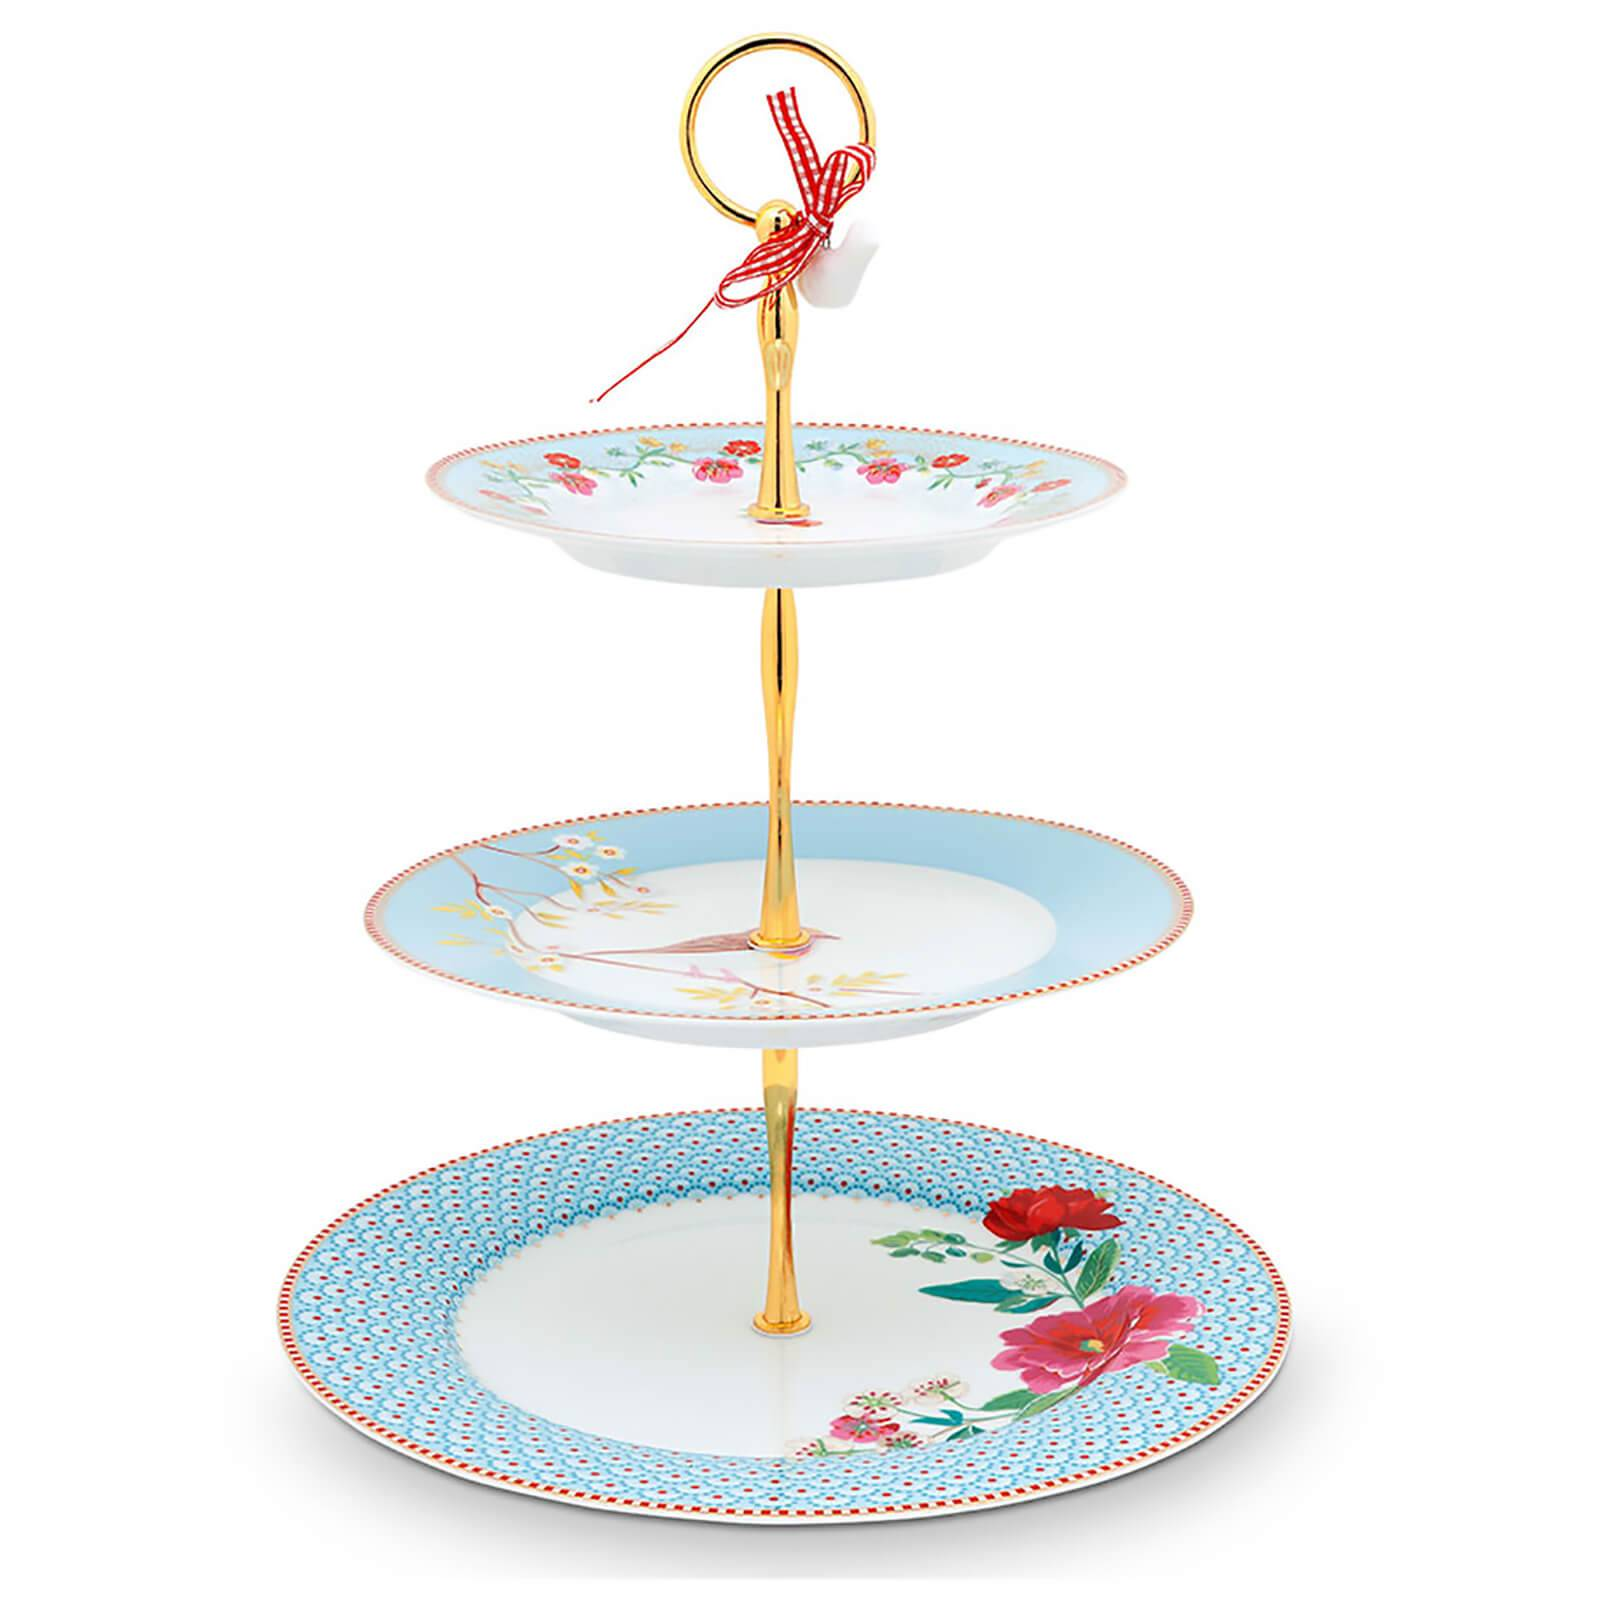 Pip Studio 3 Tier Floral Cake Stand - Blue